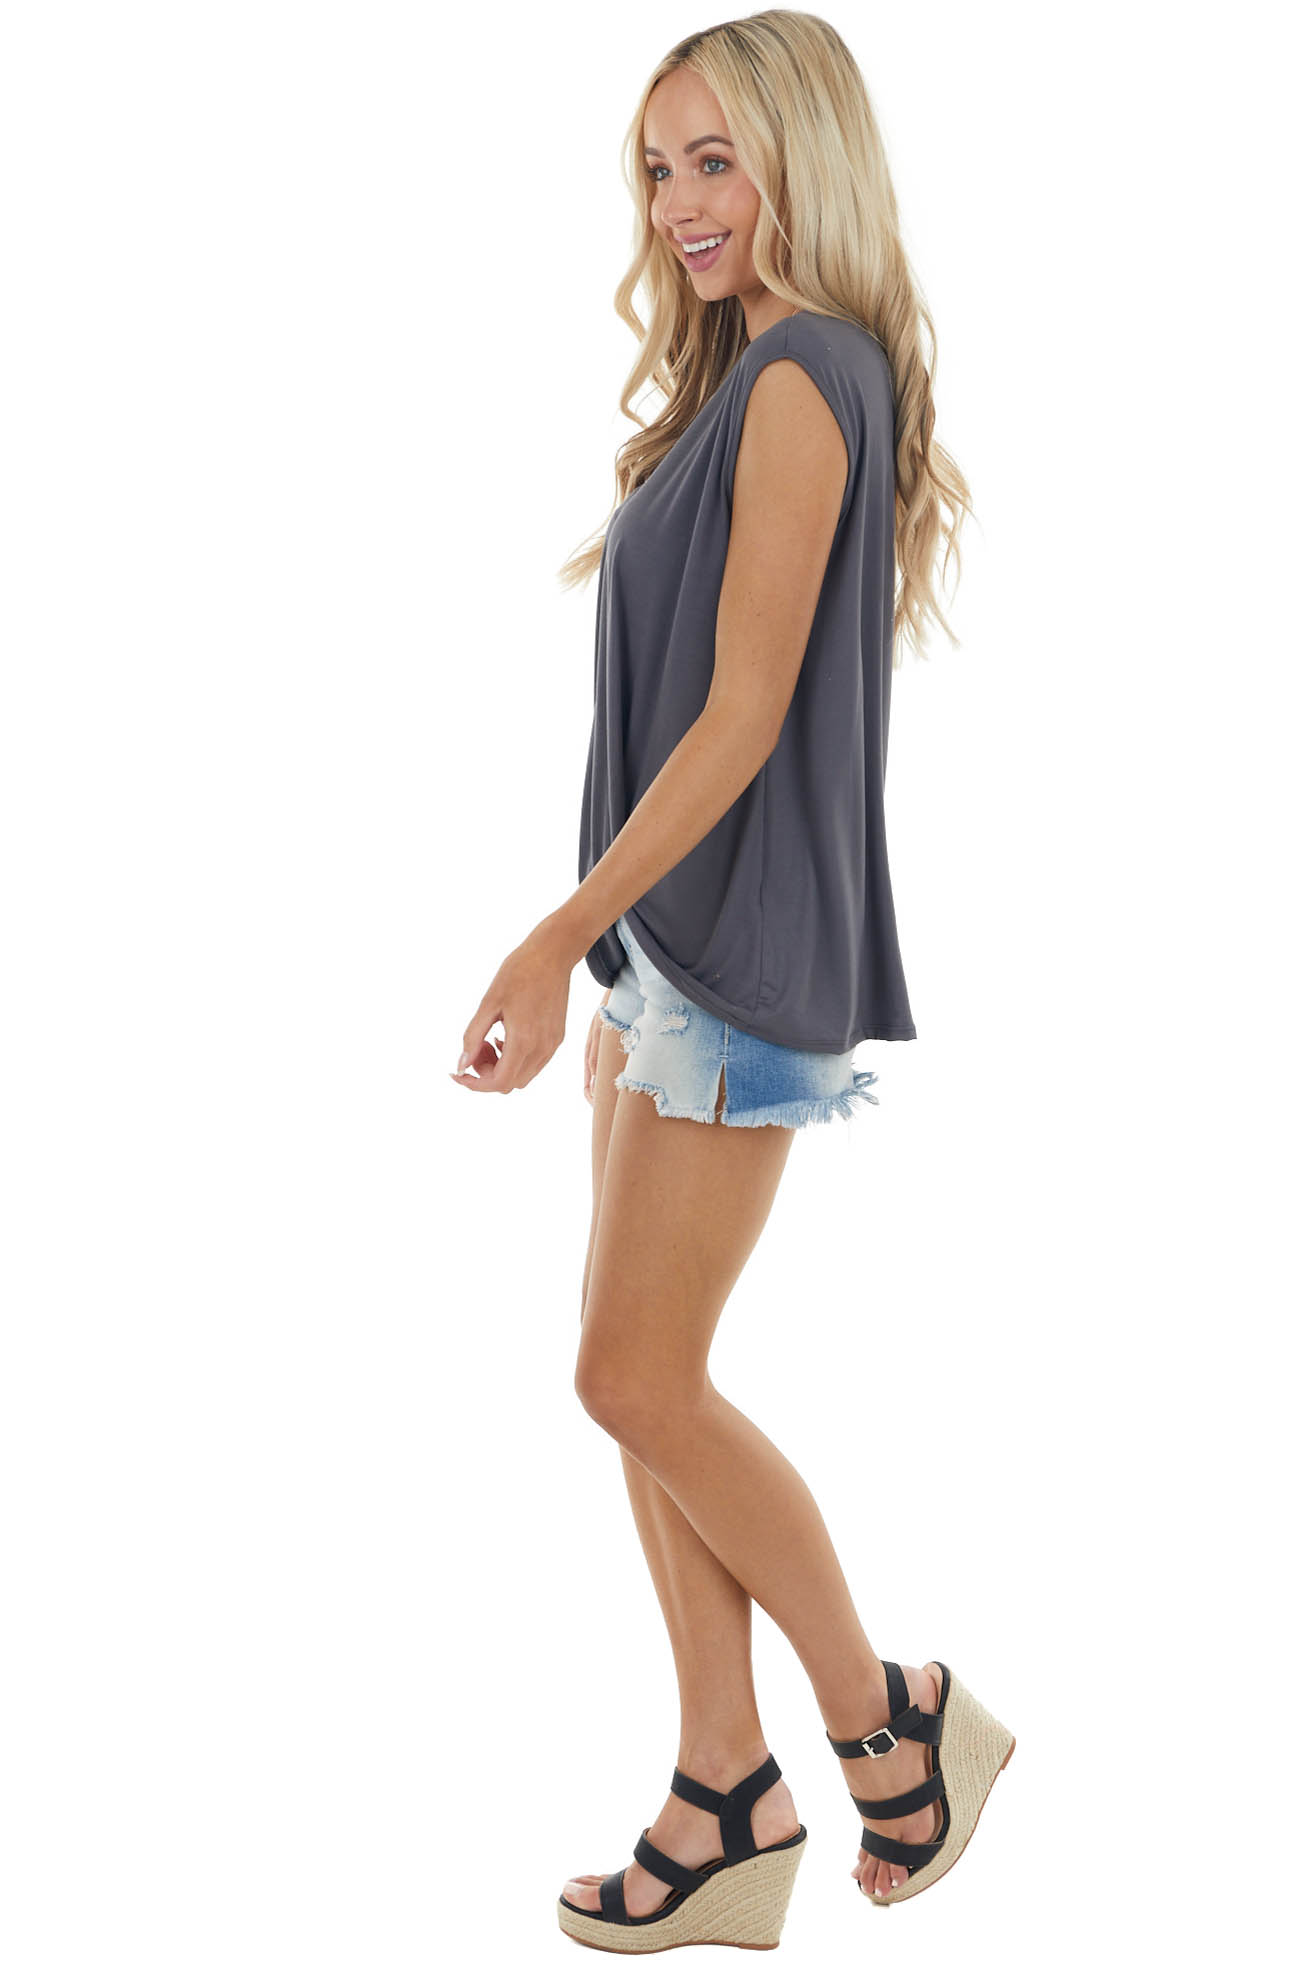 Graphite Sleeveless Knit Muscle Tank Top with Front Knot